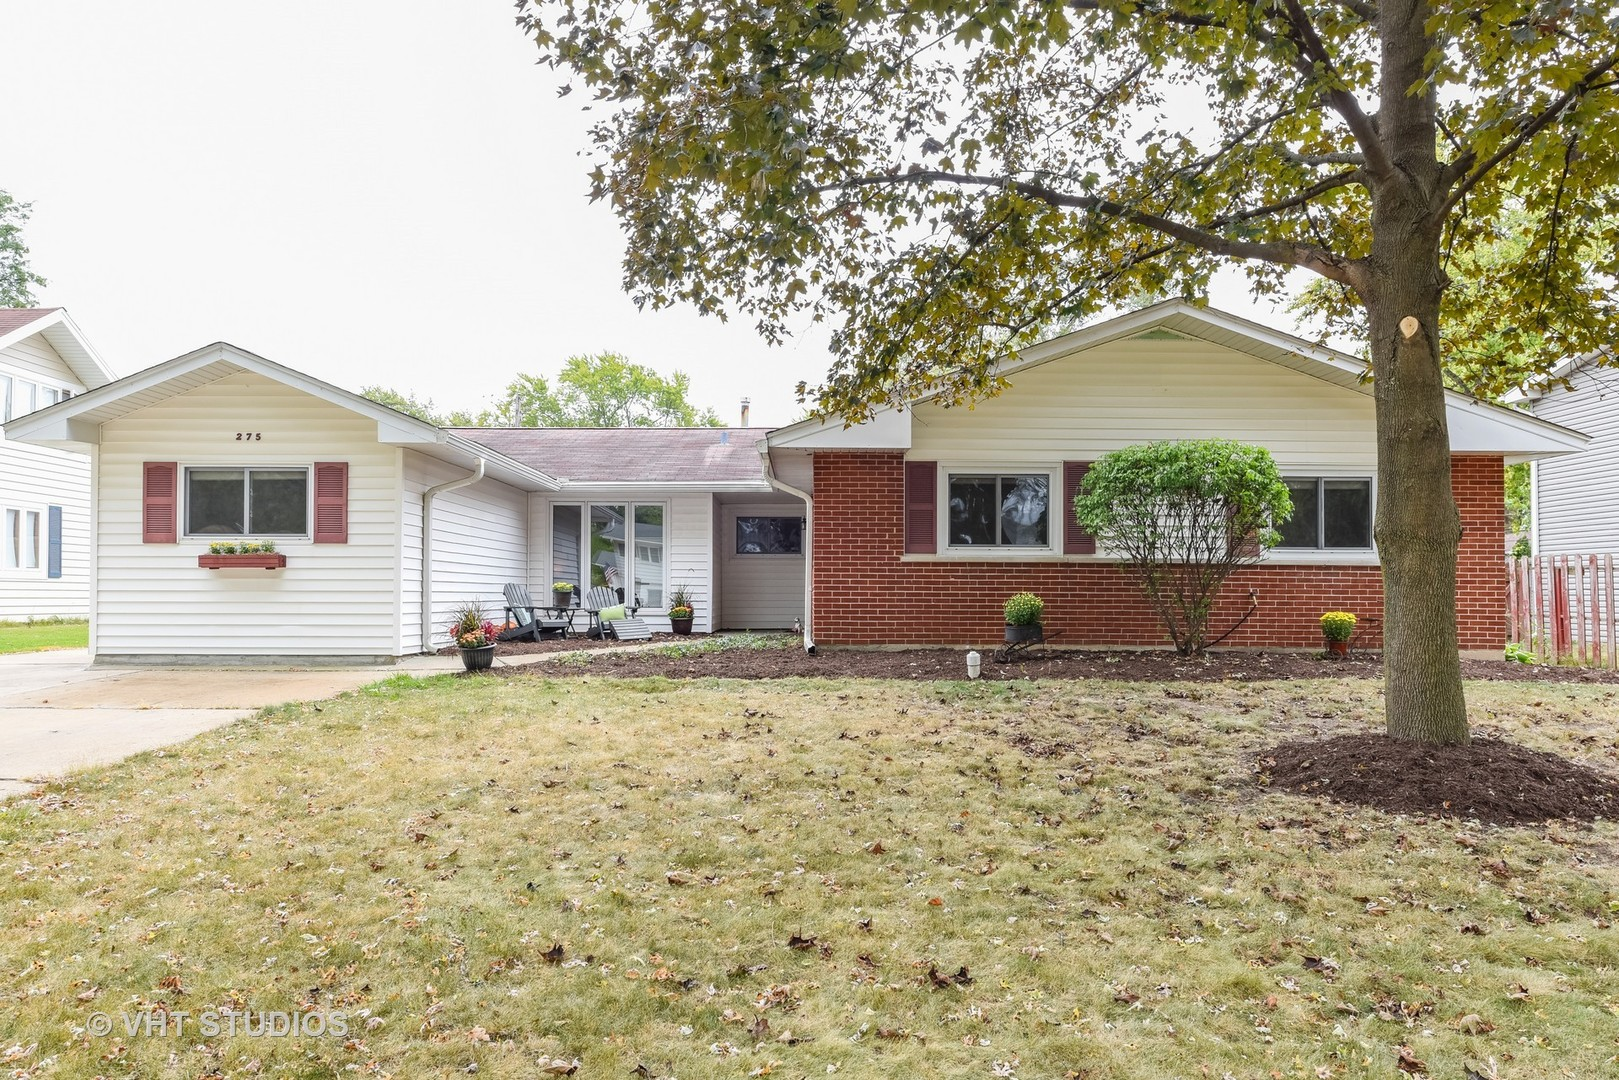 Property Photo For 21W275 Glen Park Road, LOMBARD, IL 60148, MLS # 09759575